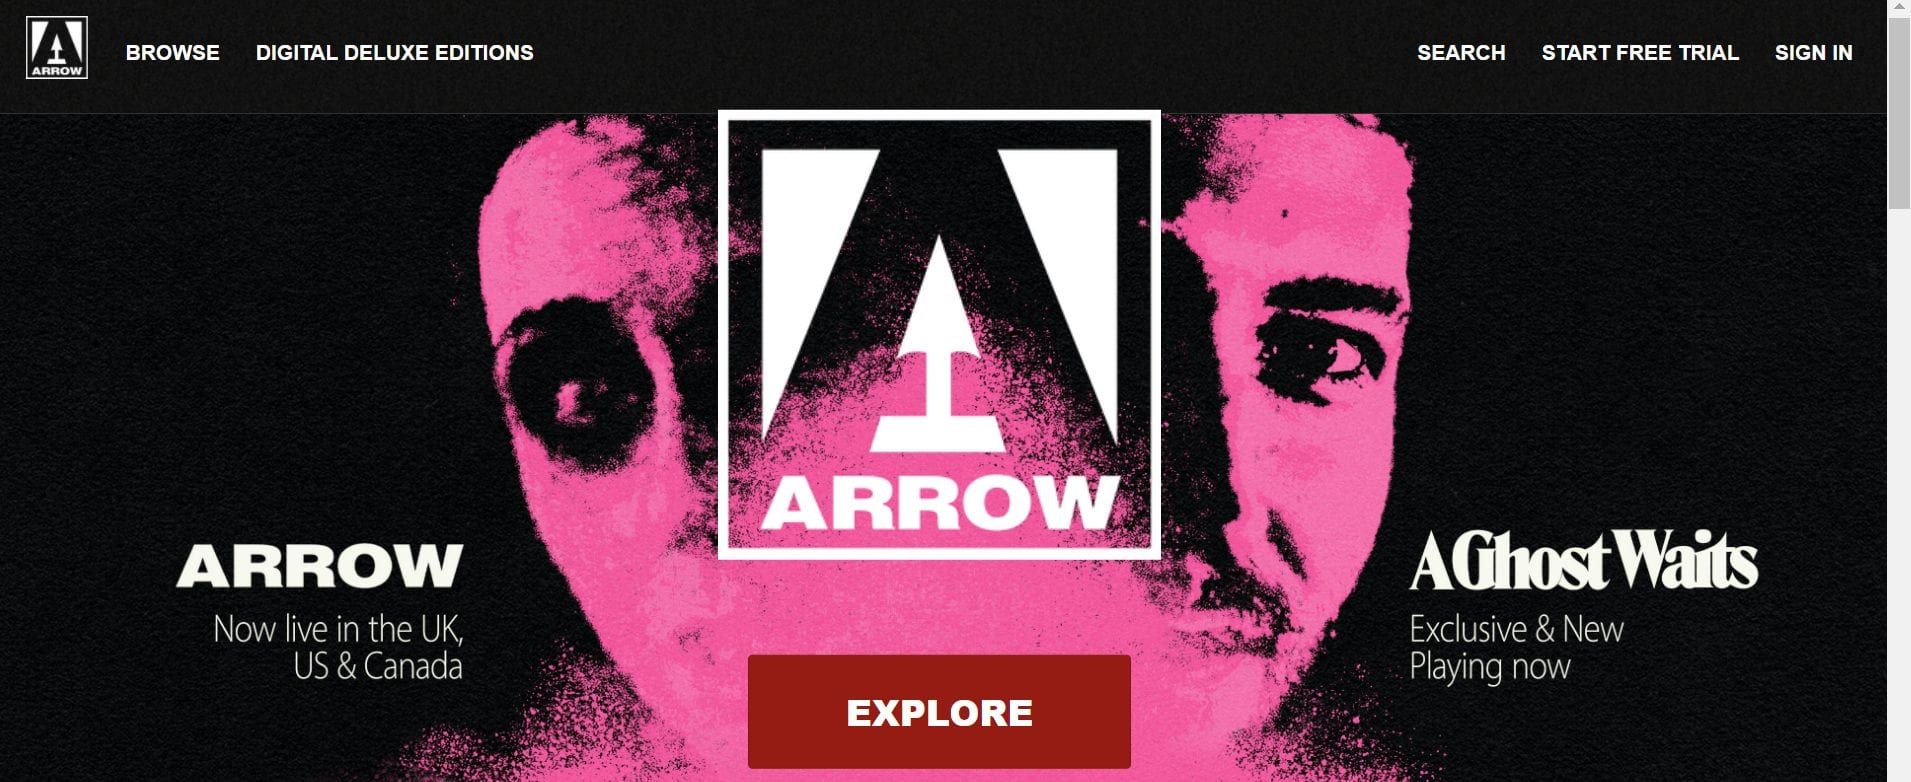 arrow player new streaming service